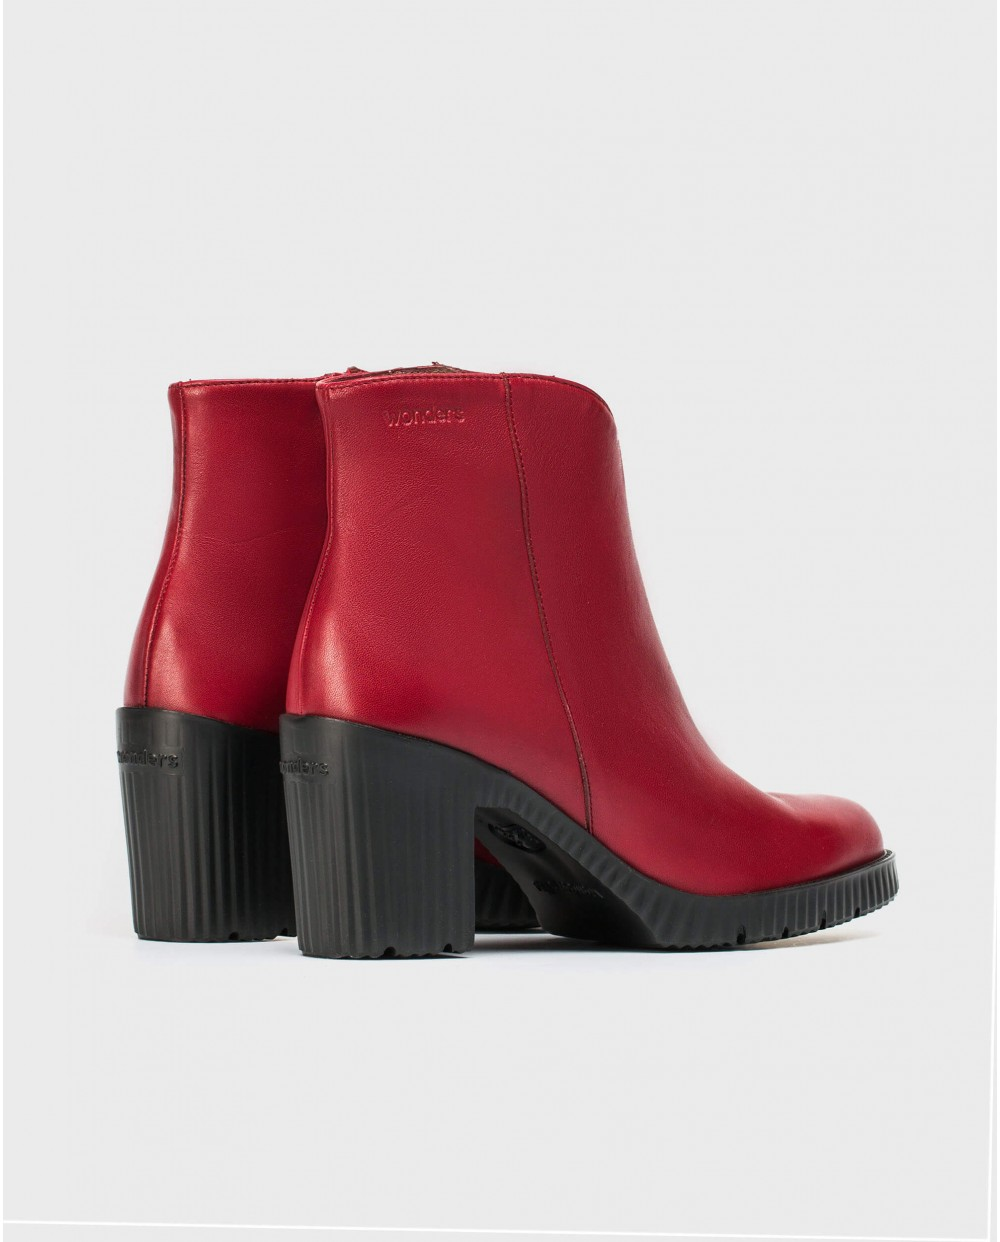 Wonders-Ankle Boots-Soft platform ankle boot